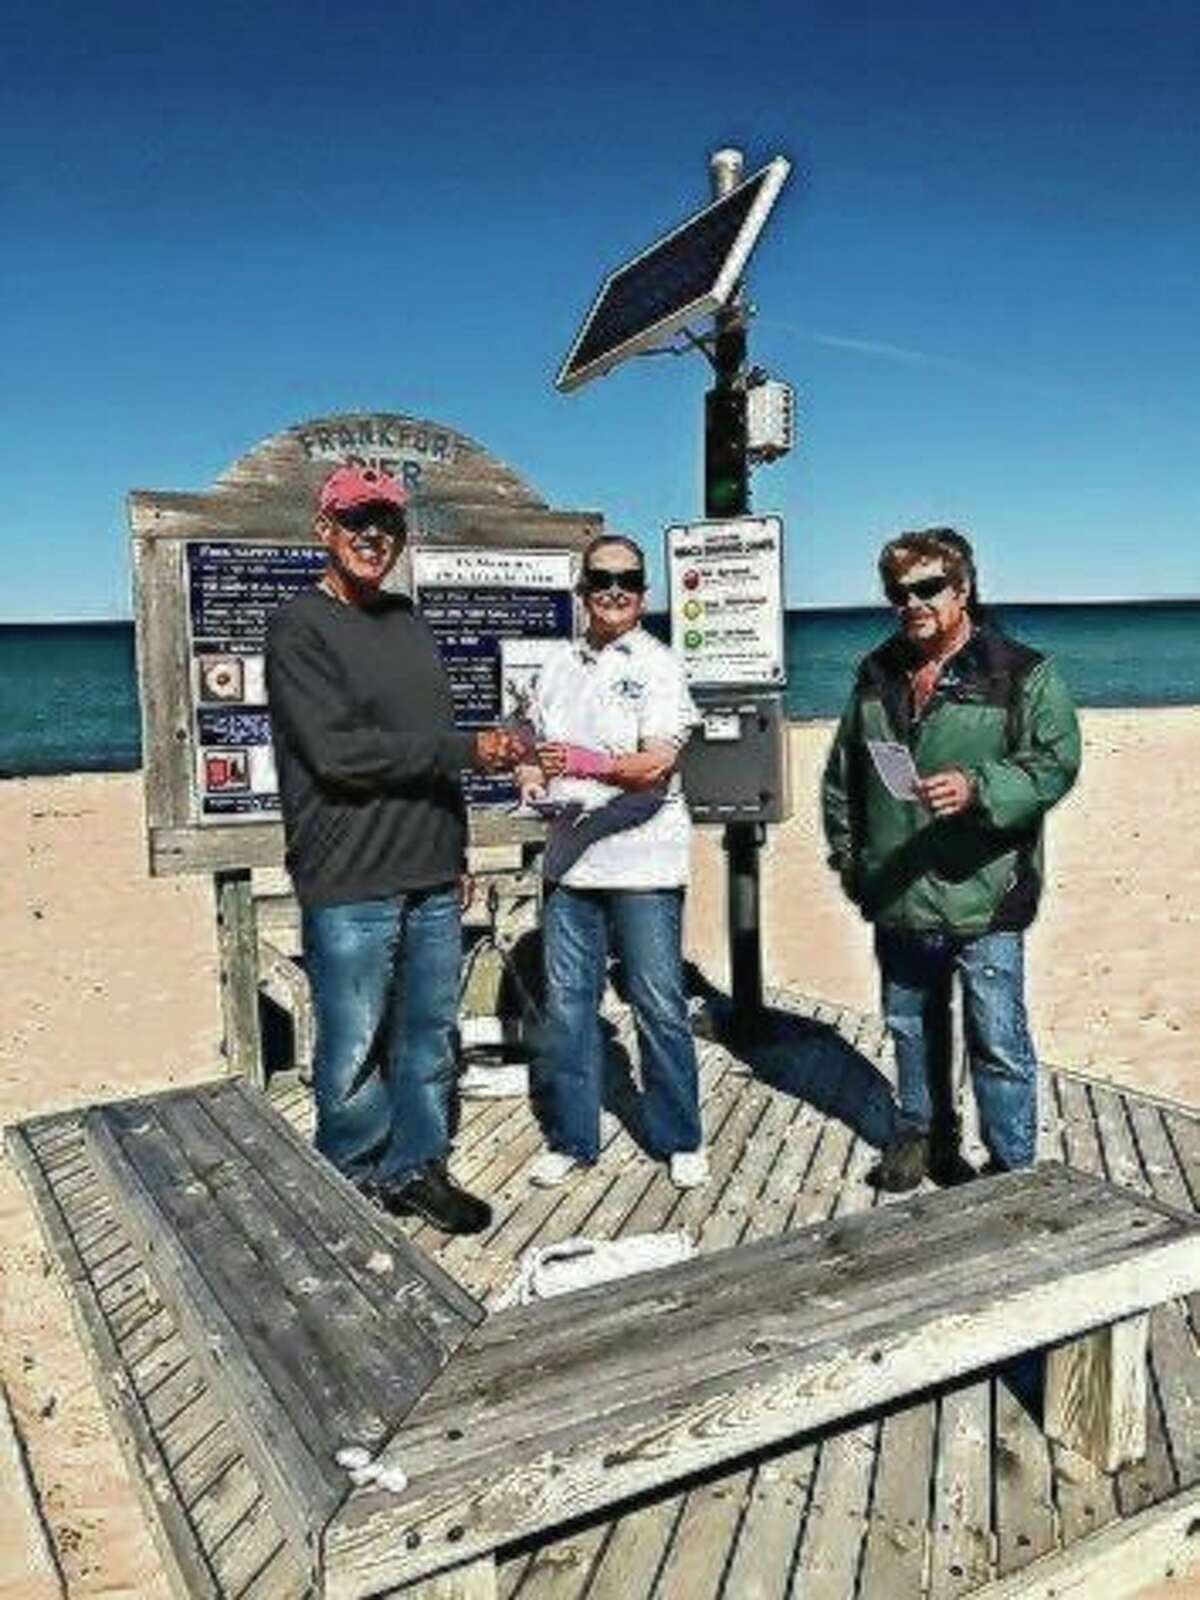 The Benzie Aquatics Center recently partnered with the City of Frankfort to help educate people about the dangers of swimming in Lake Michigan. (Courtesy Photo)